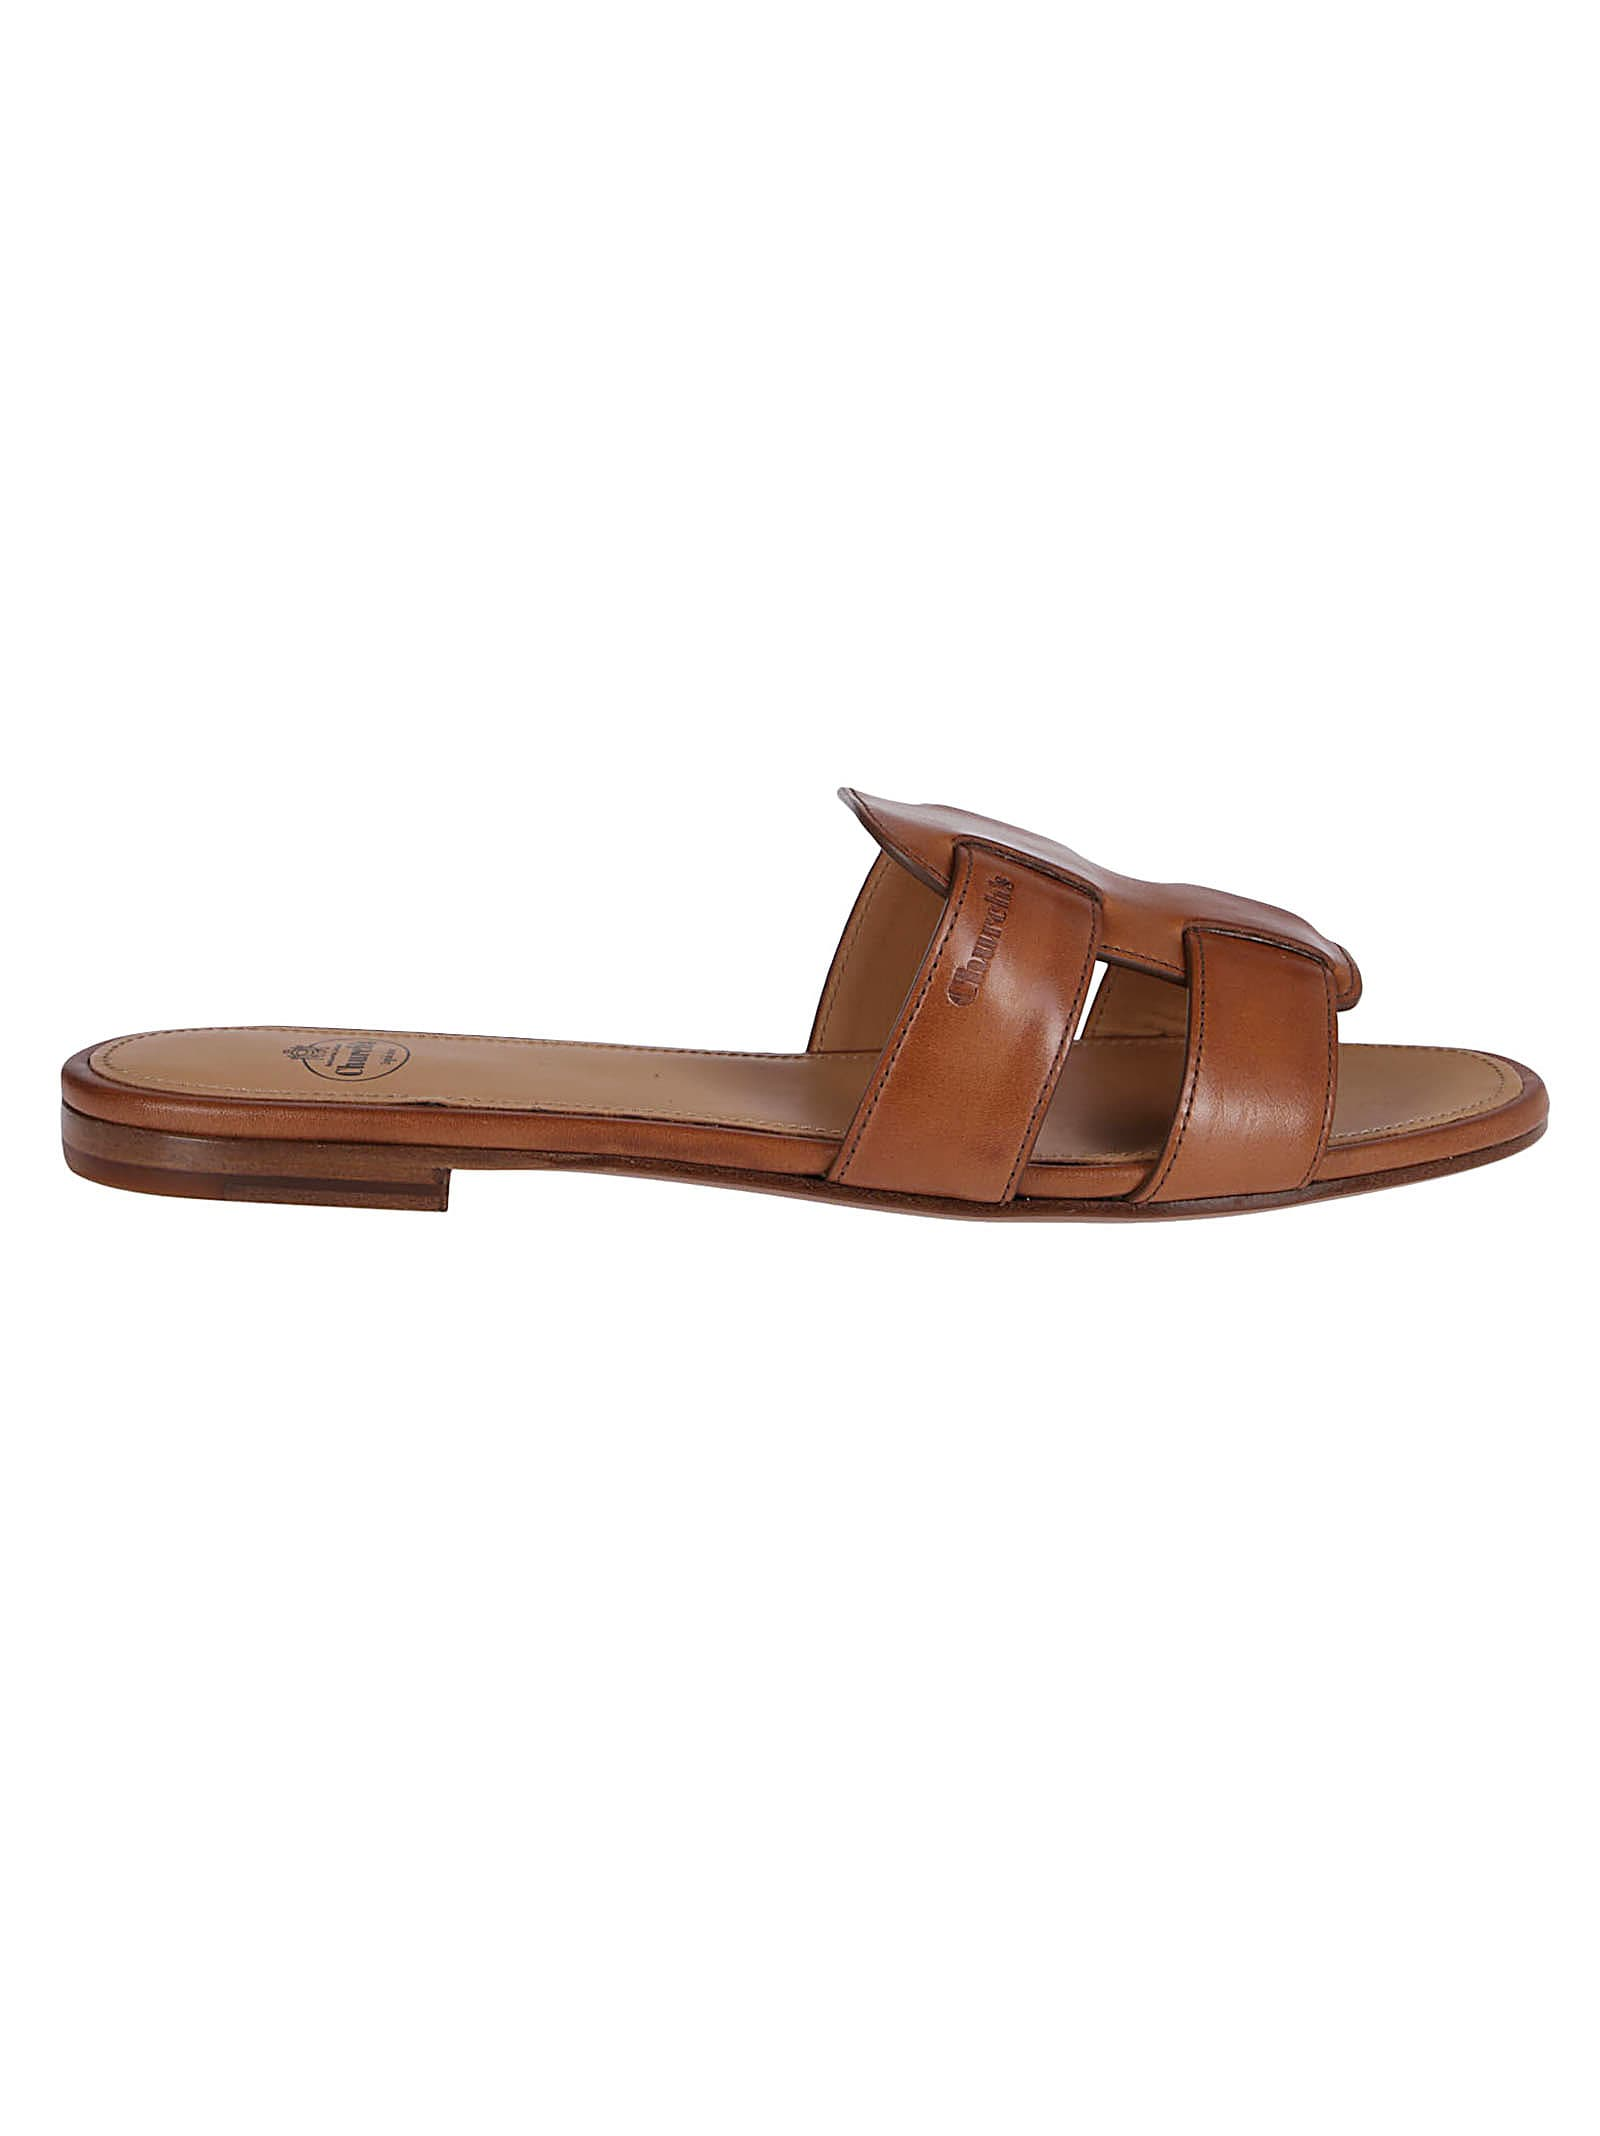 Brown Leather Dee Dee Sandals